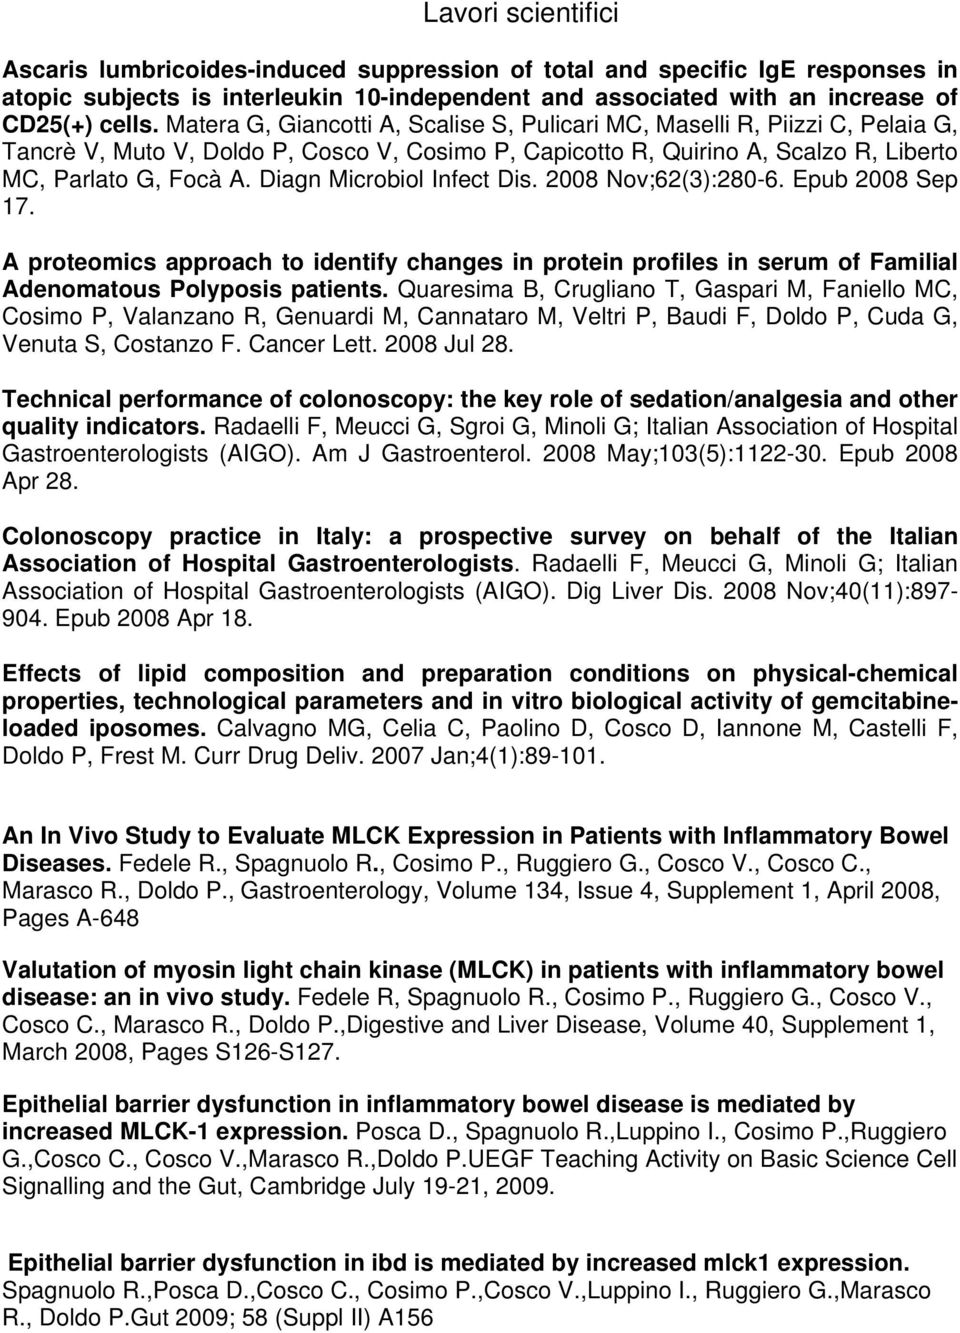 Diagn Microbiol Infect Dis. 2008 Nov;62(3):280-6. Epub 2008 Sep 17. A proteomics approach to identify changes in protein profiles in serum of Familial Adenomatous Polyposis patients.